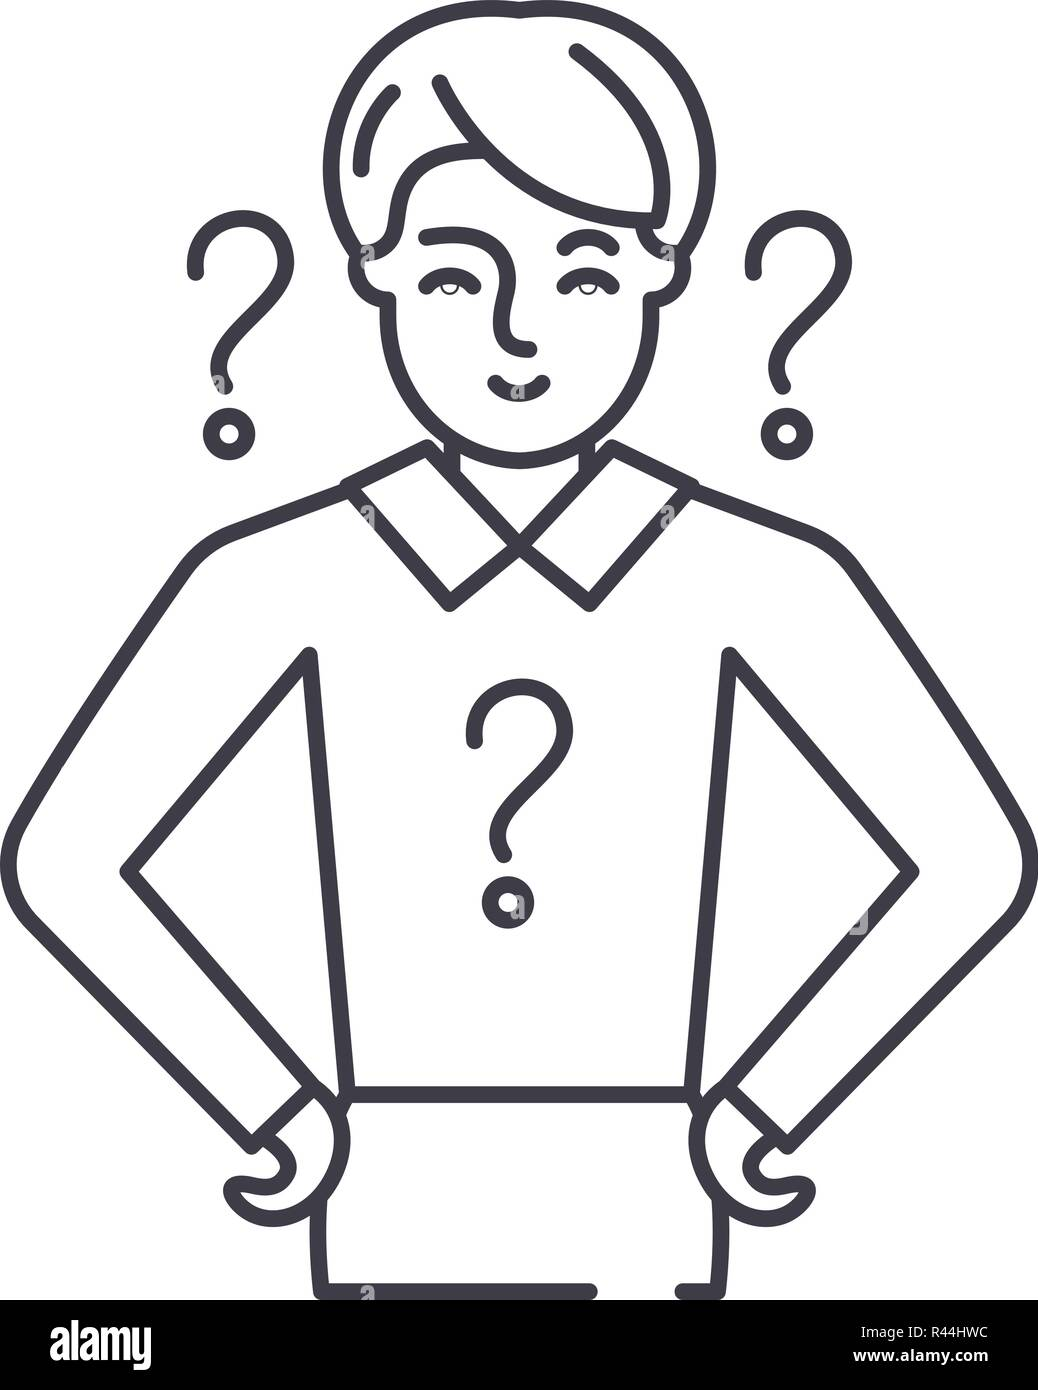 Management issues line icon concept. Management issues vector linear illustration, symbol, sign - Stock Vector